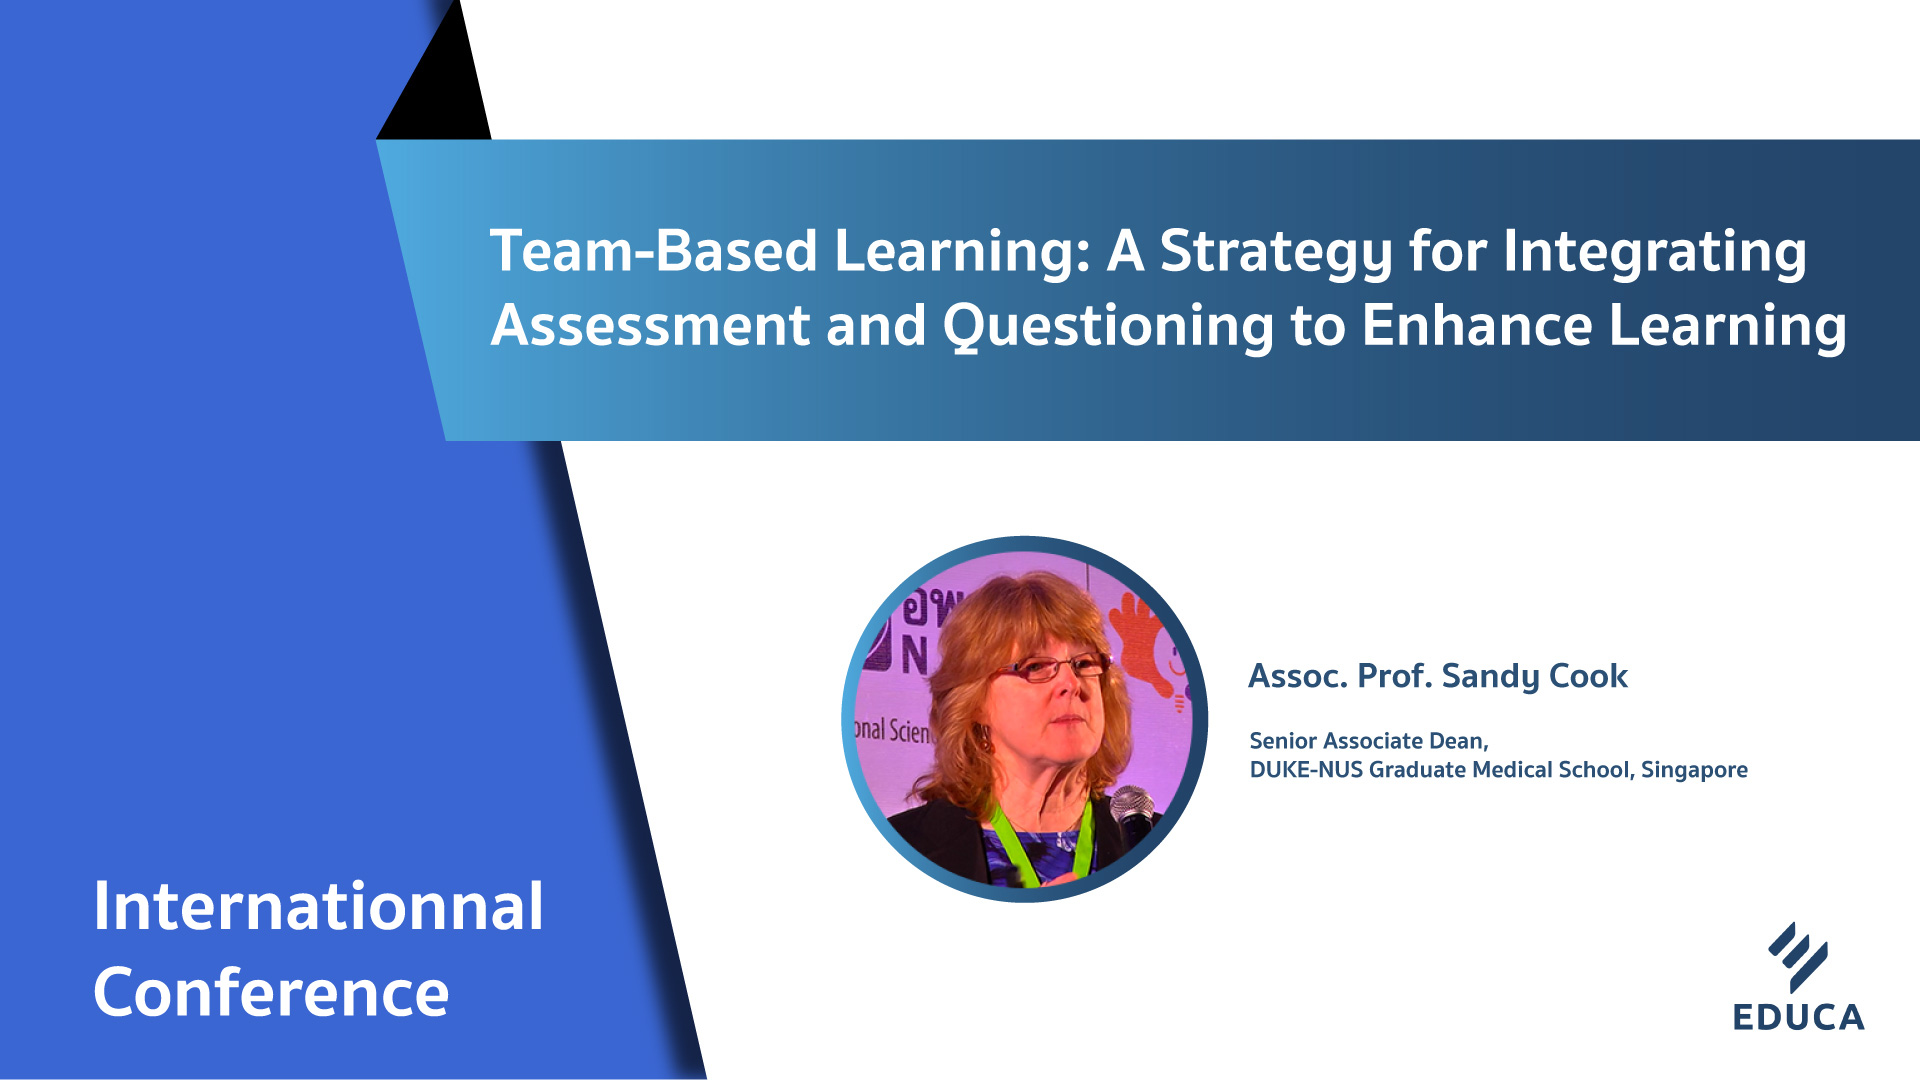 Team-Based Learning: A Strategy for Integrating Assessment and Questioning to Enhance Learning